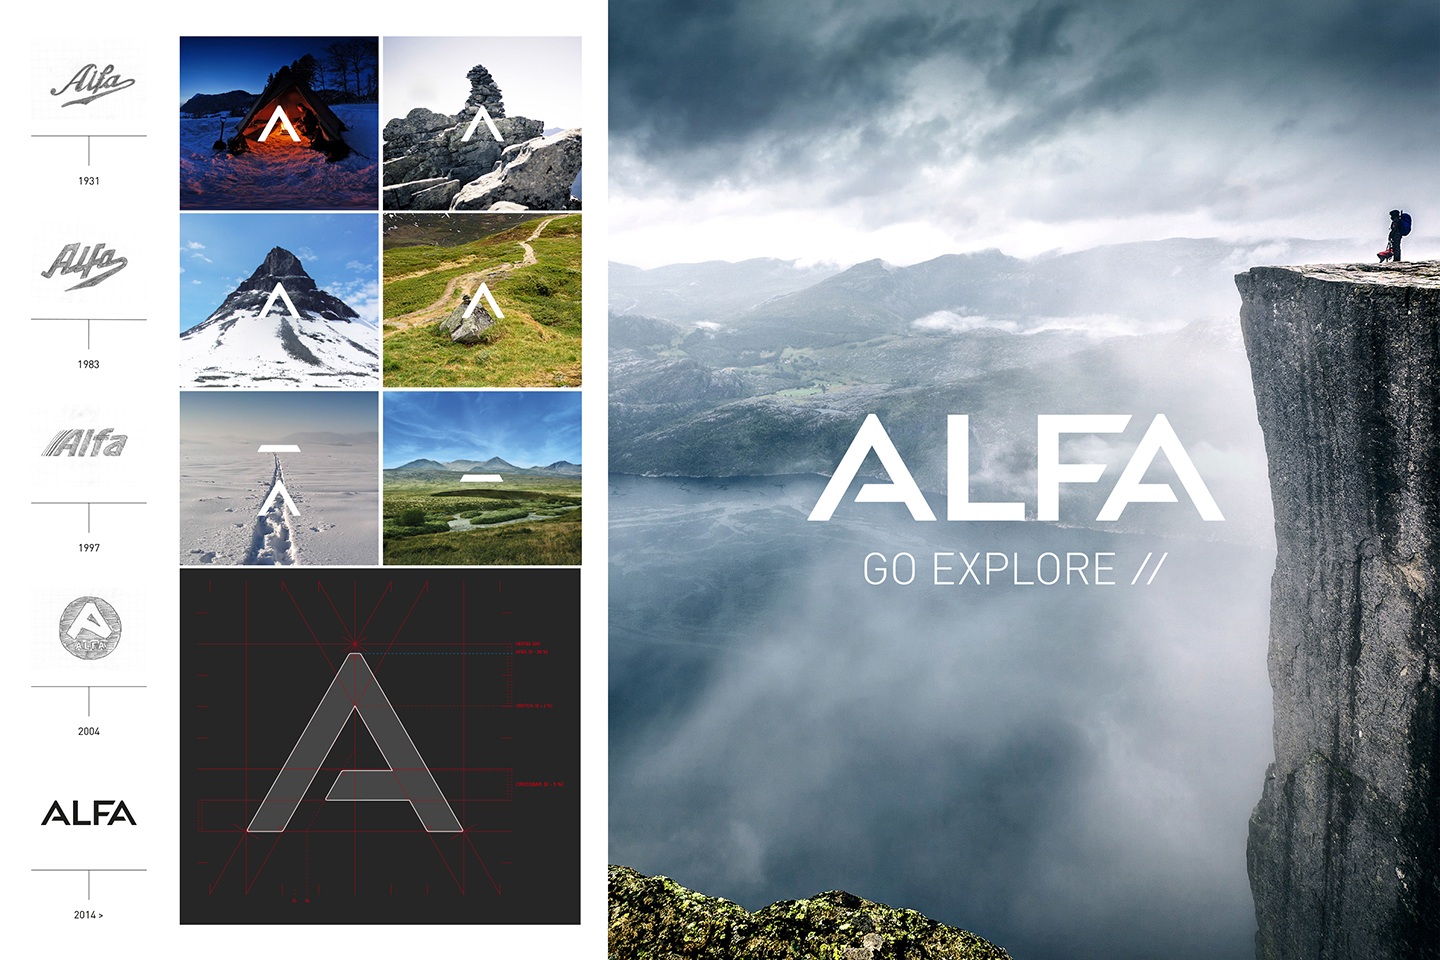 Alfa logo development and nature images